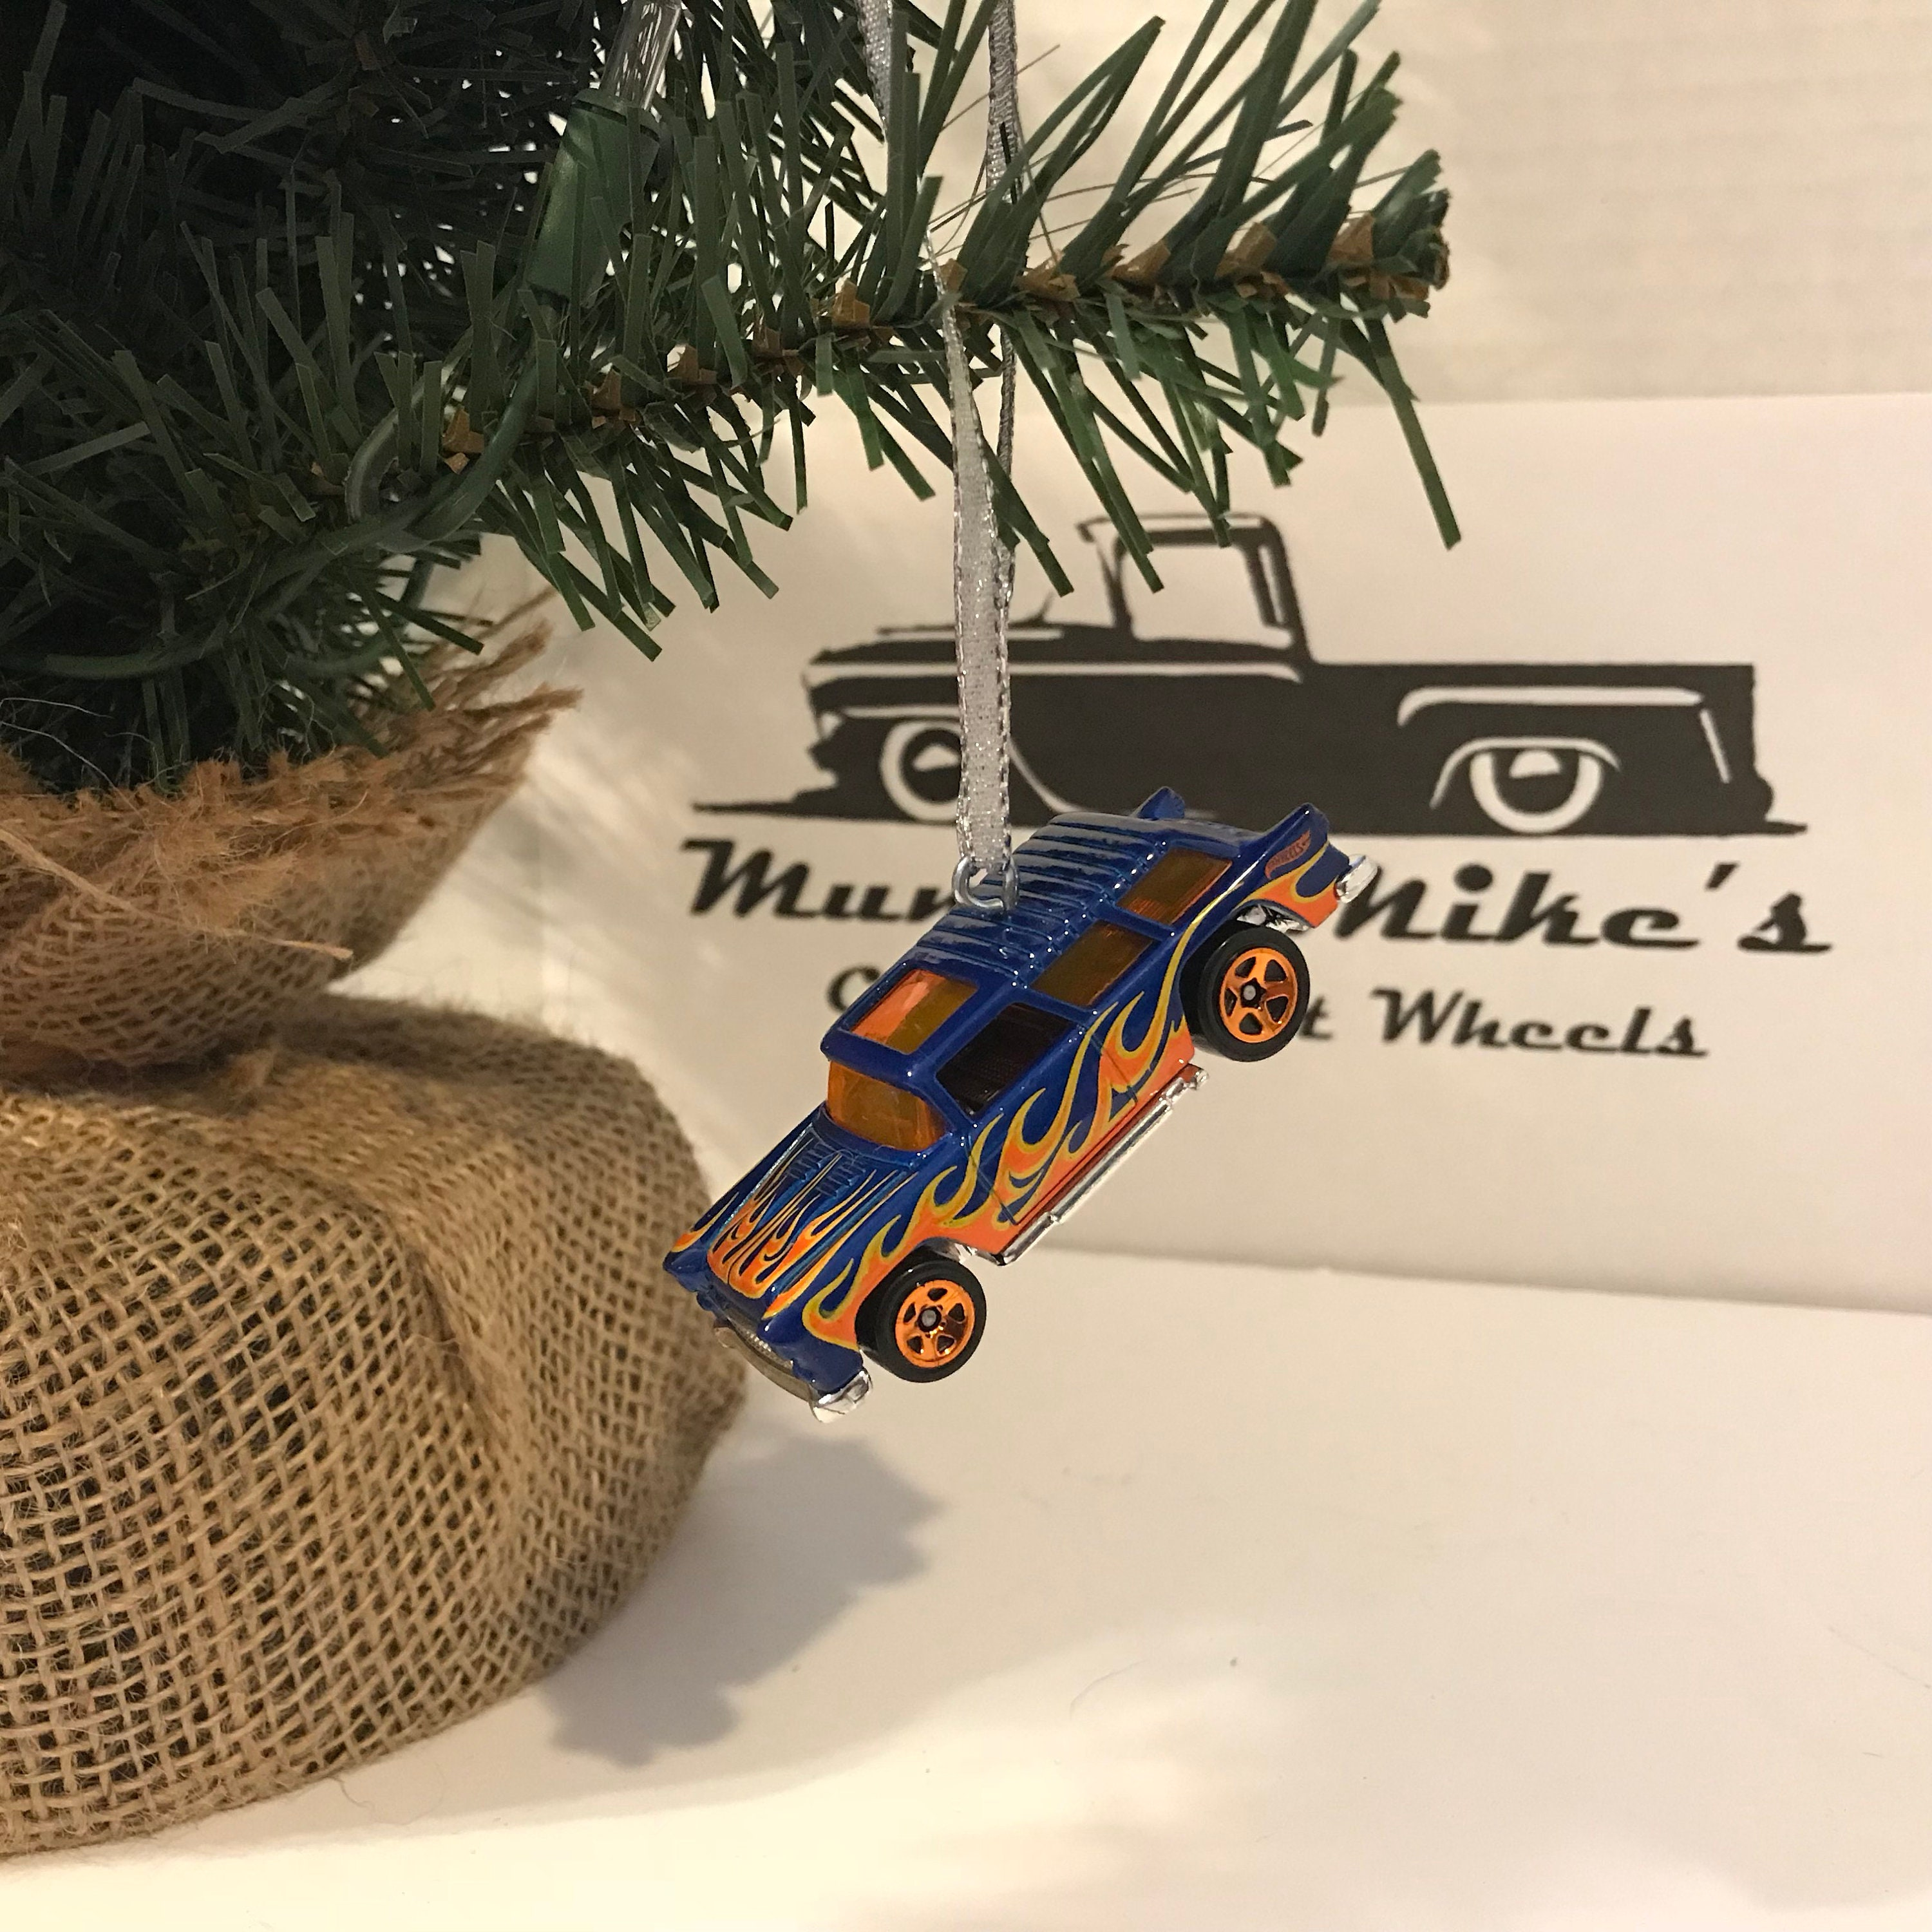 Hot Wheels Christmas Ornament Custom  1955 Chevy Nomad wagon blue with orange flames Free Shipping!